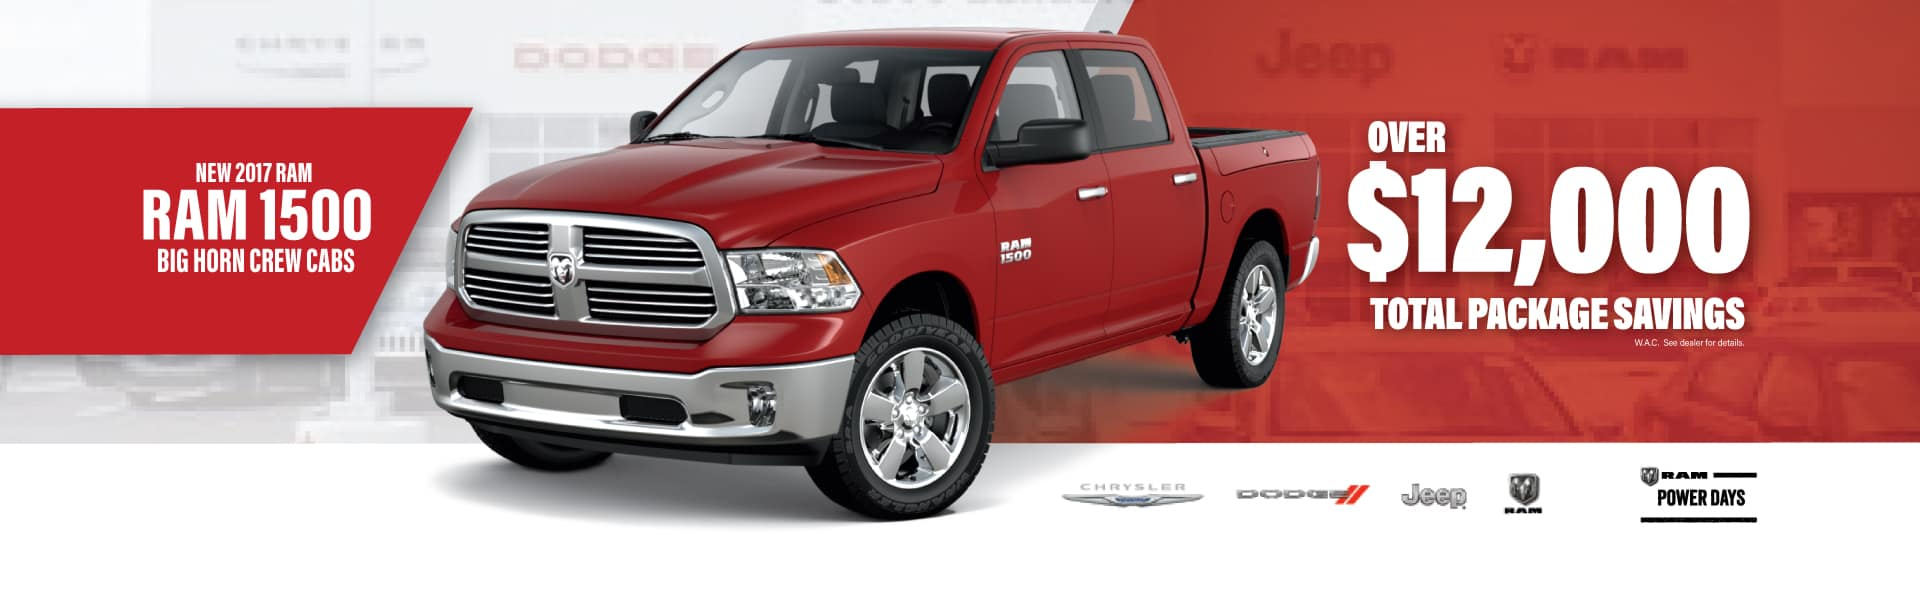 Dodge Dealership Jonesboro Ar >> Used Chrysler Jeep Dodge Ram In The Little Rock Area | Autos Post